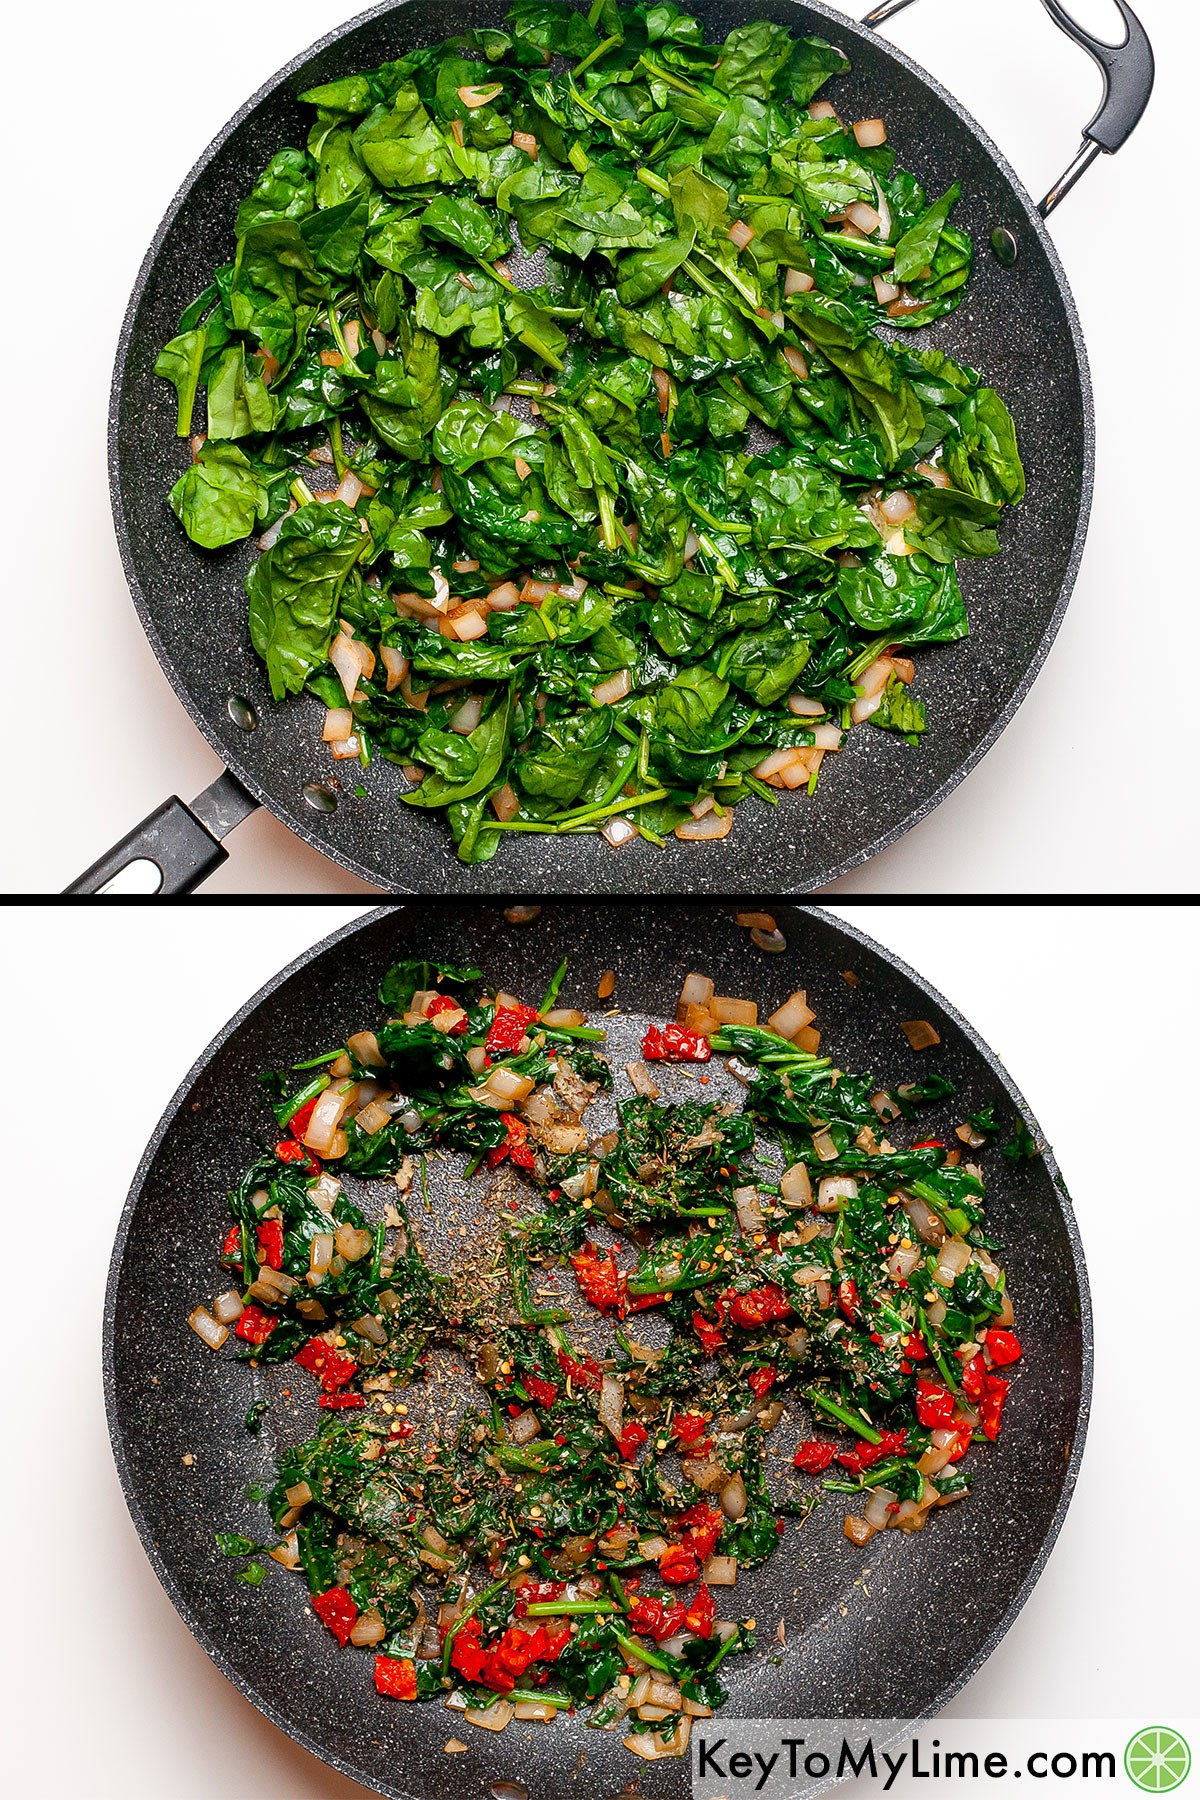 A process collage showing the spinach before and after it wilts.